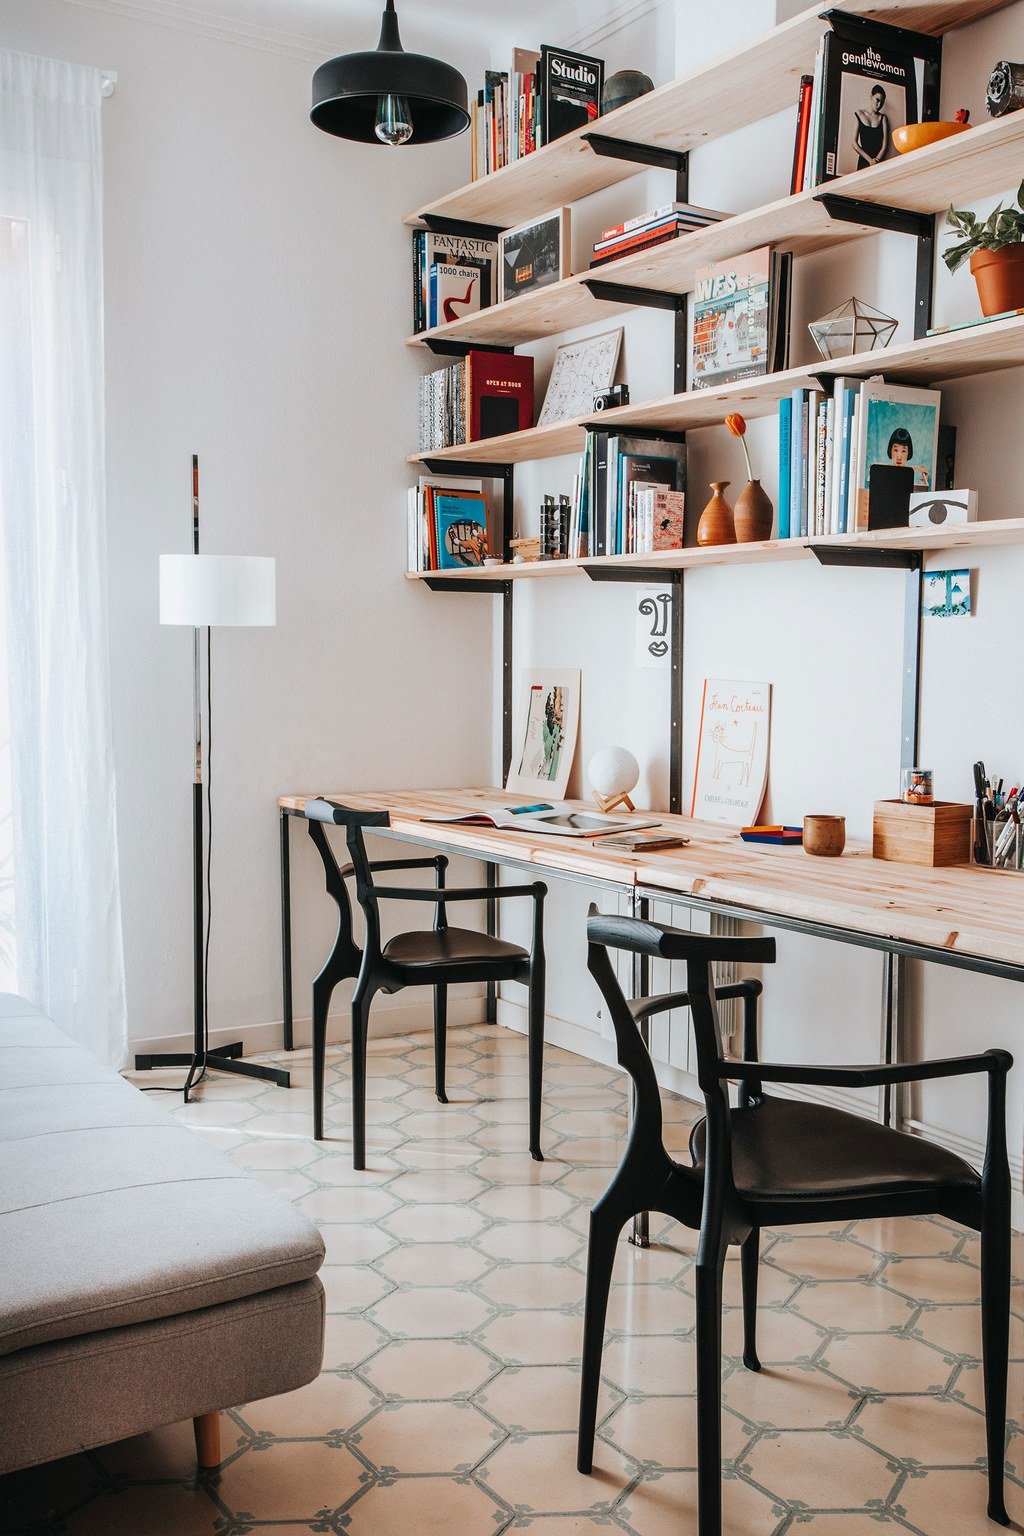 the_nordroom_a_barcelona_apartment_with_a_coral_pink_kitchen_5.jpg